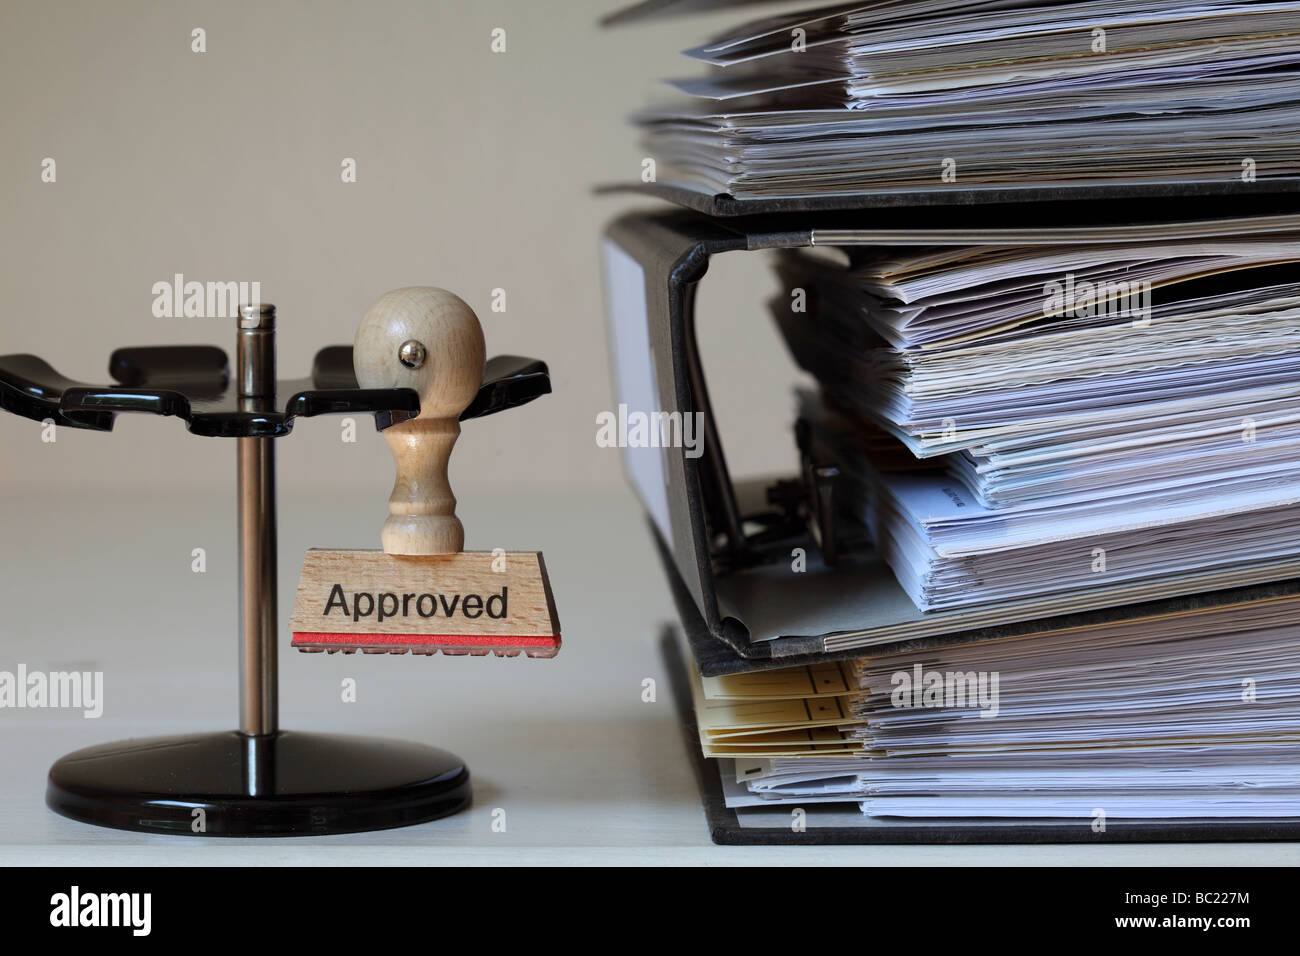 Stamp with inscription Approved next to a pile of files - Stock Image